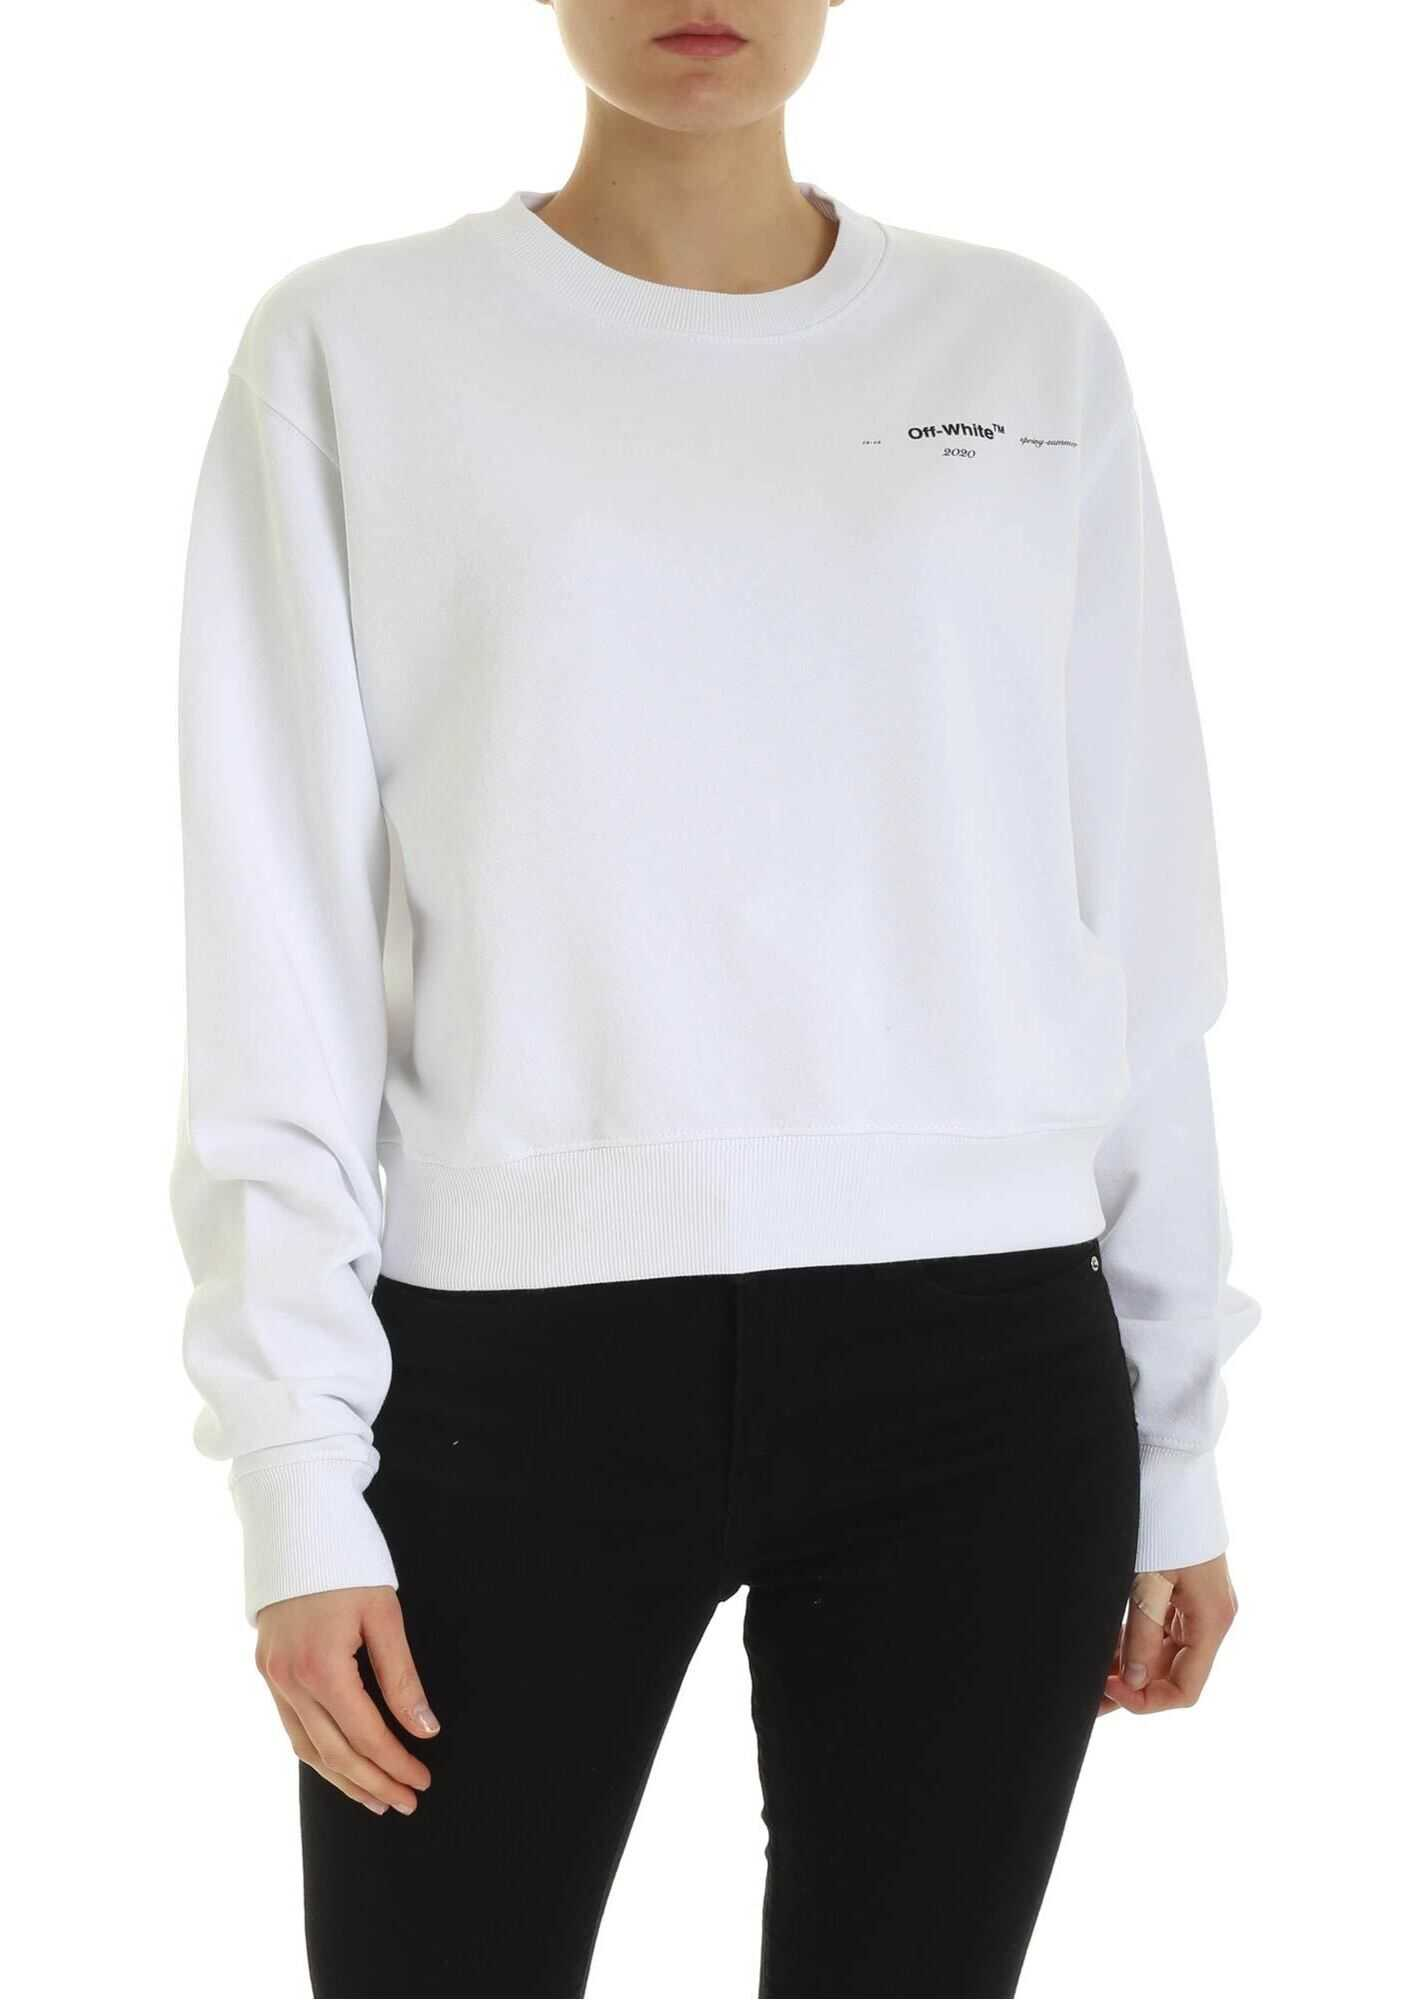 Off-White Arrow Puzzle Sweatshirt In White White